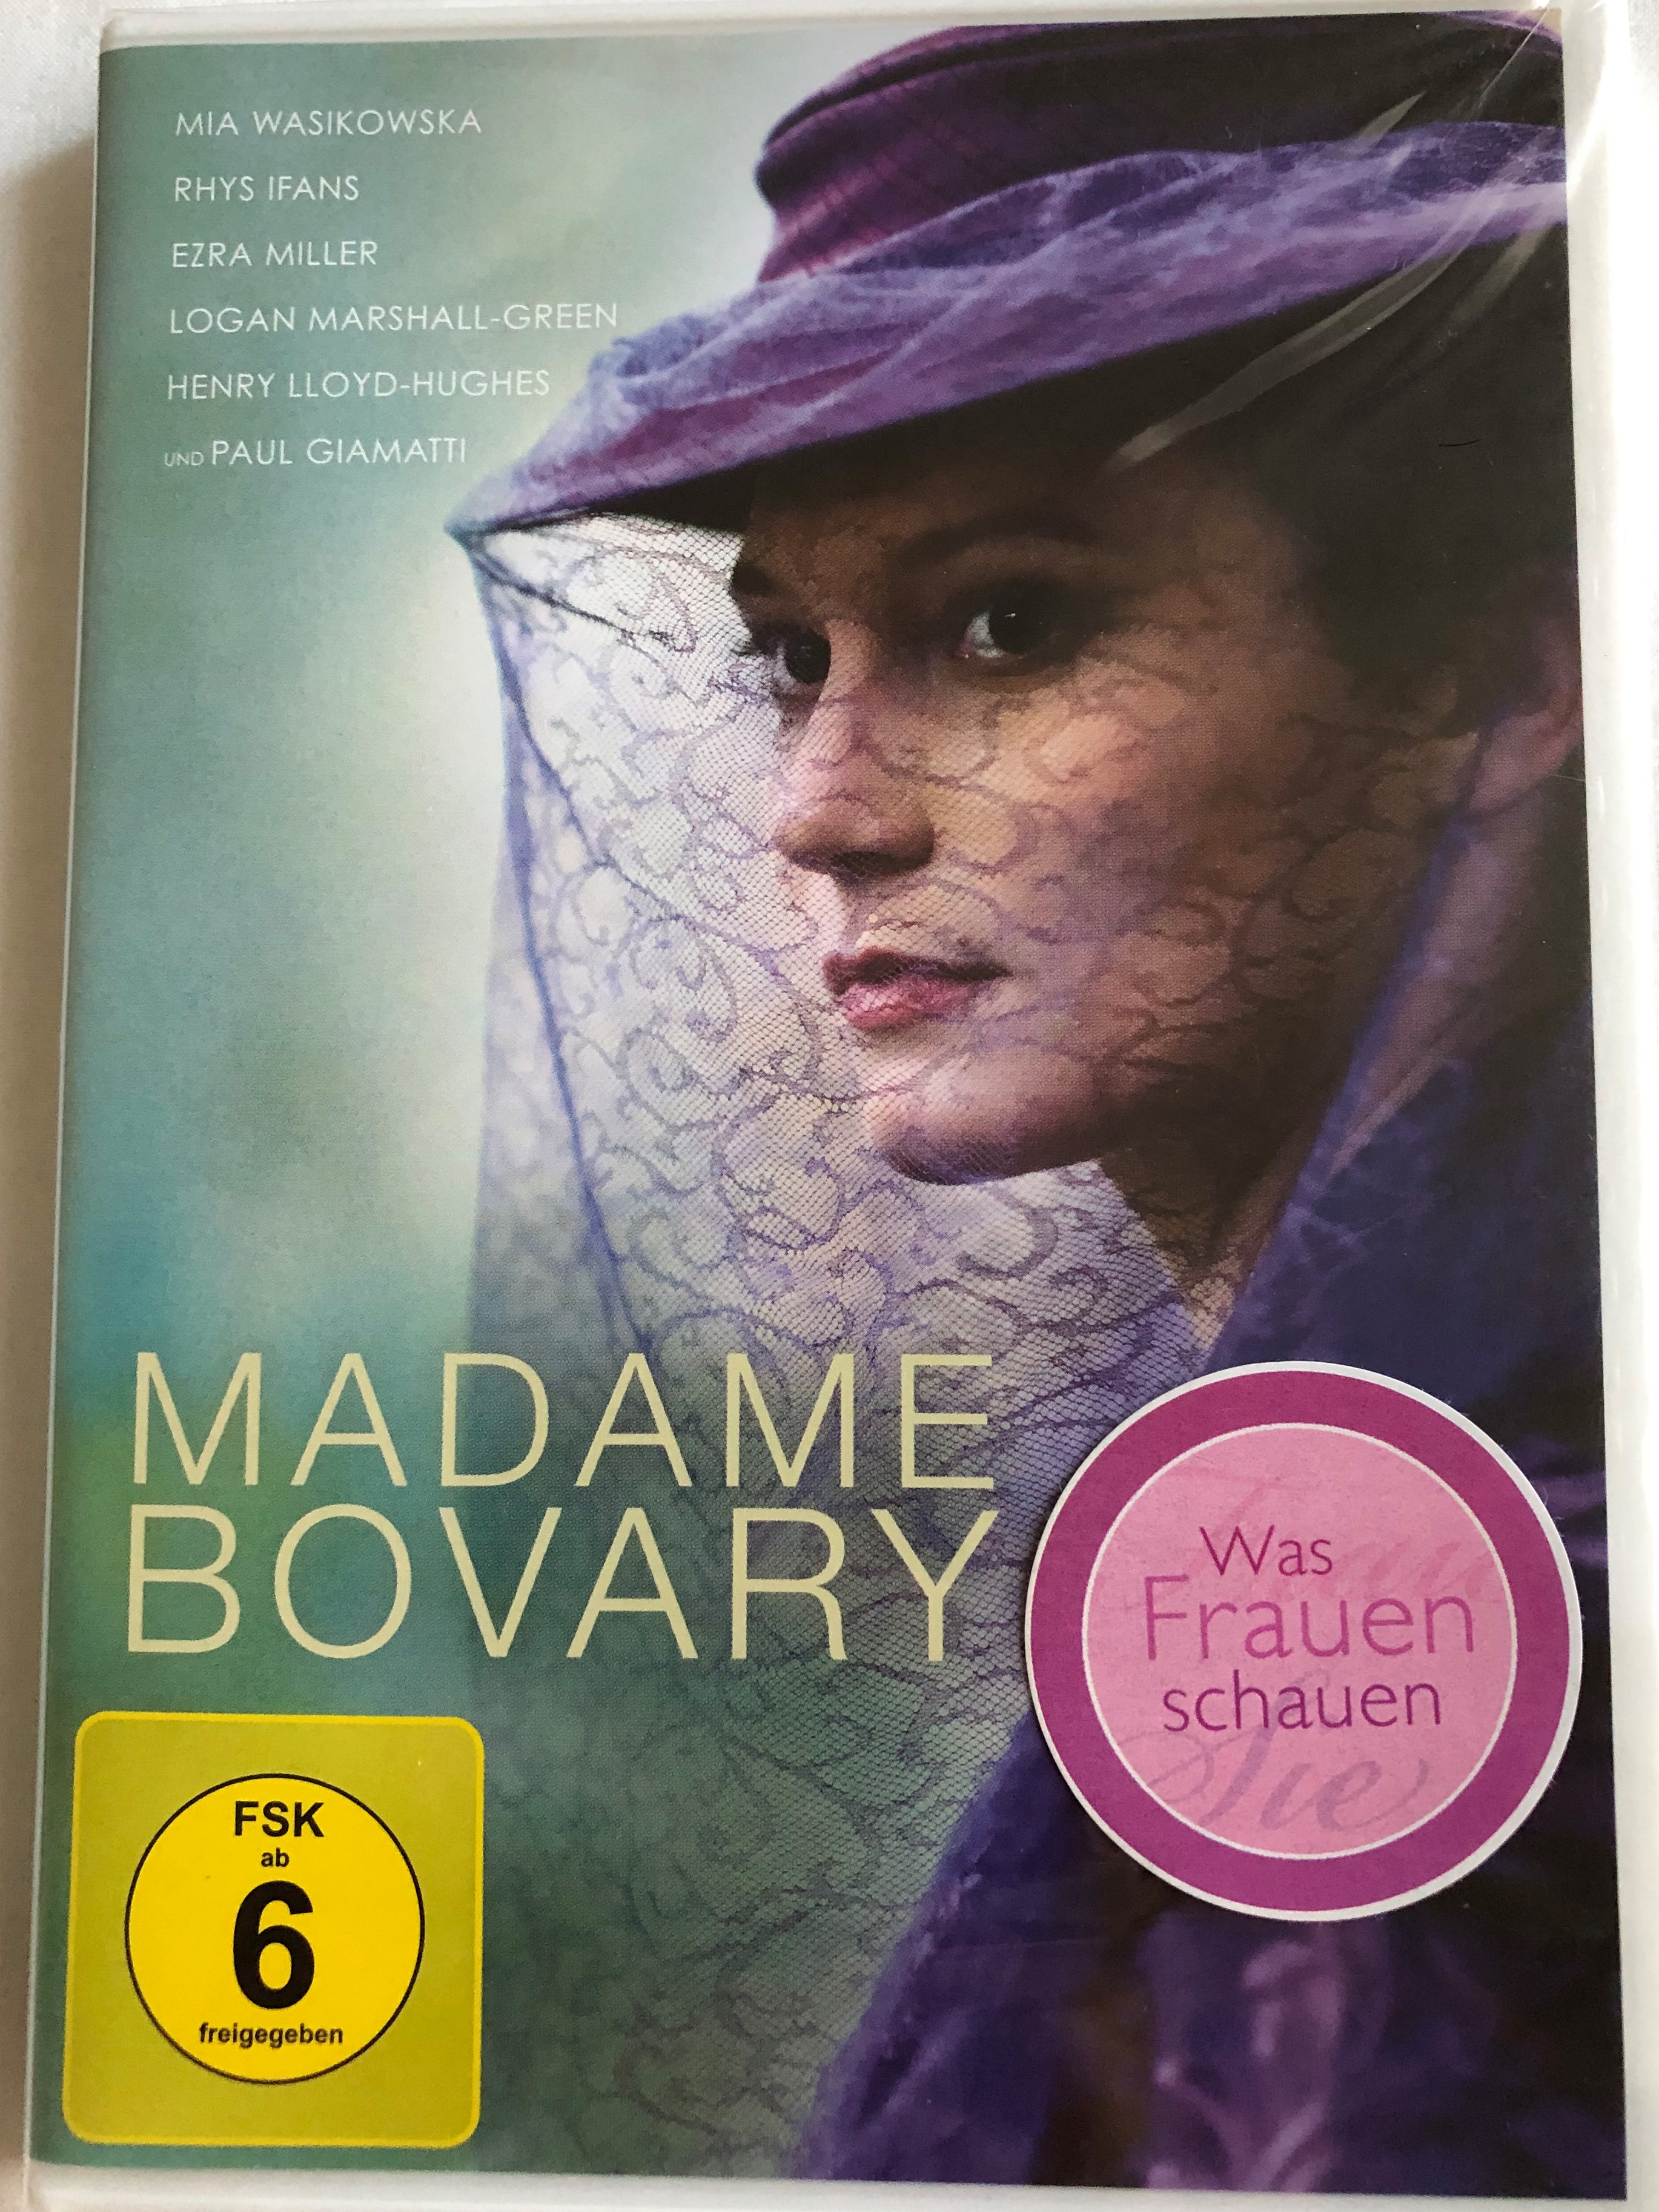 madame-bovary-dvd-2014-directed-by-sophie-barthes-starring-mia-wasikowska-henry-lloyd-hughes-ezra-miller-paul-giamatti-1-.jpg